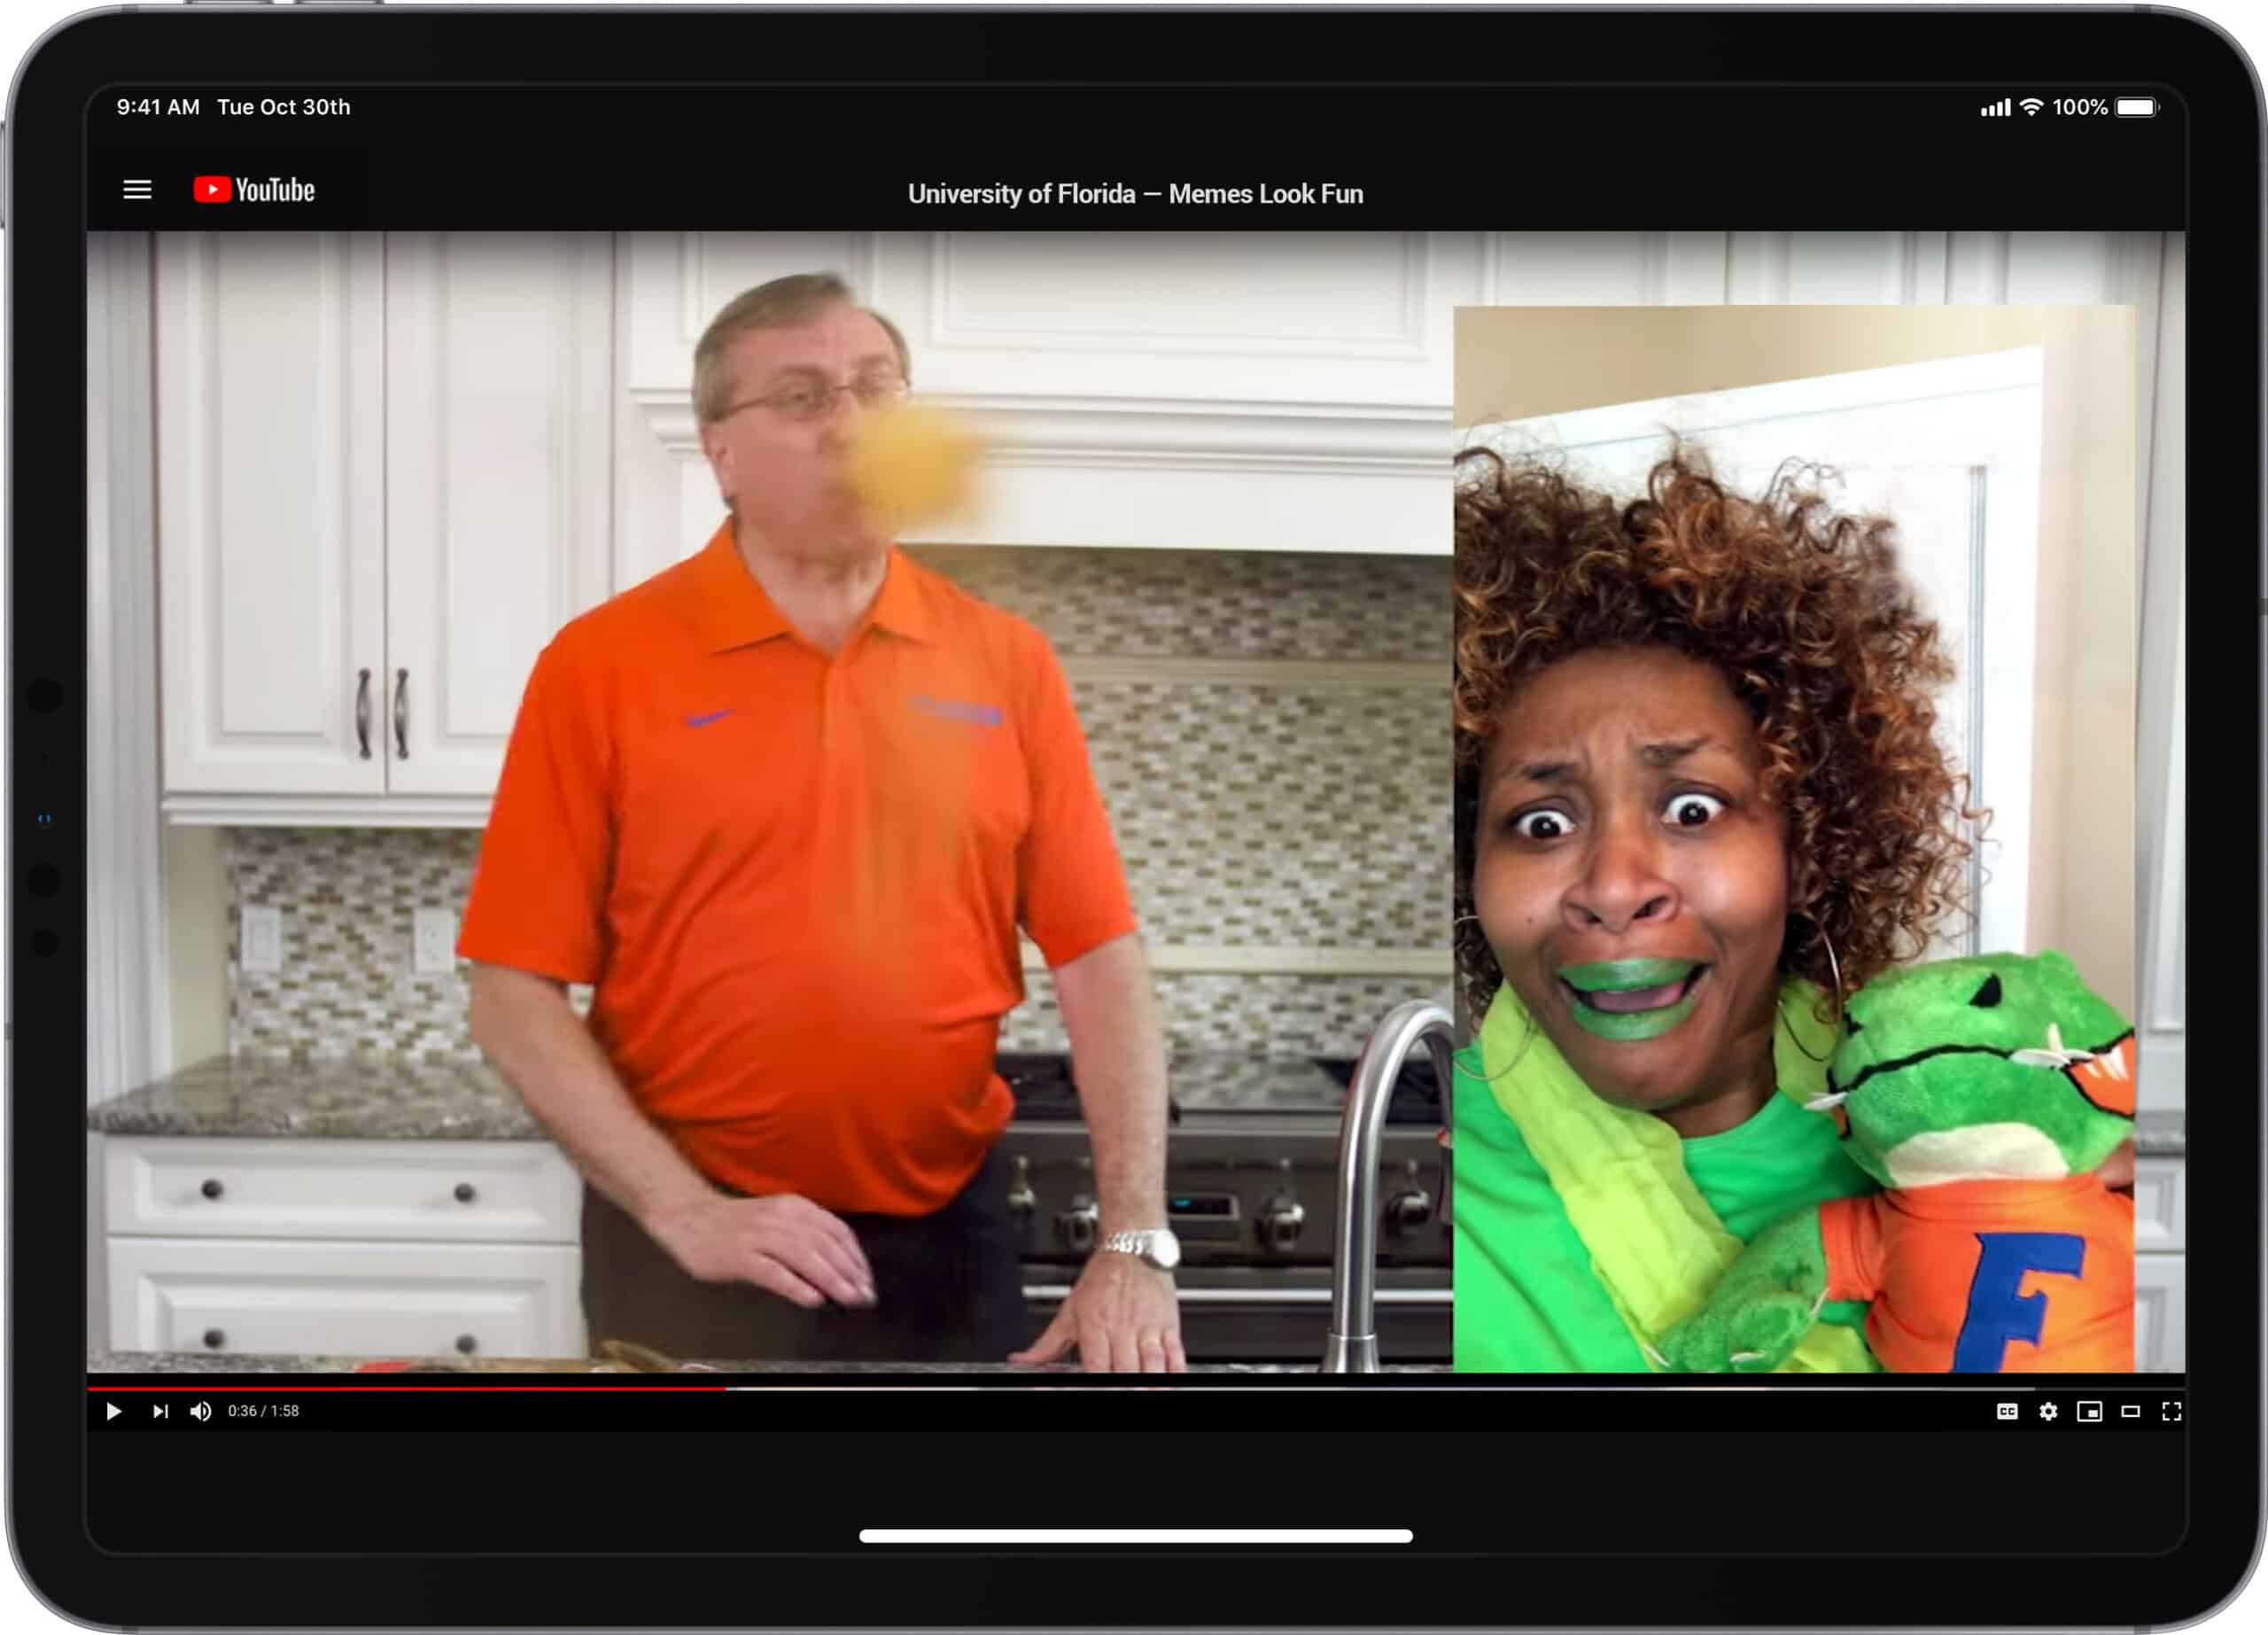 """UF President Kent Fuchs asked GloZell to help him take the Cinnamon Challenge as part of his """"Memes Look Fun"""" YouTube video that welcomed students to UF this fall.<br /><br />Watch at <a href='https://www.youtube.com/user/universityofflorida/'>www.youtube.com/user/universityofflorida/</a>"""